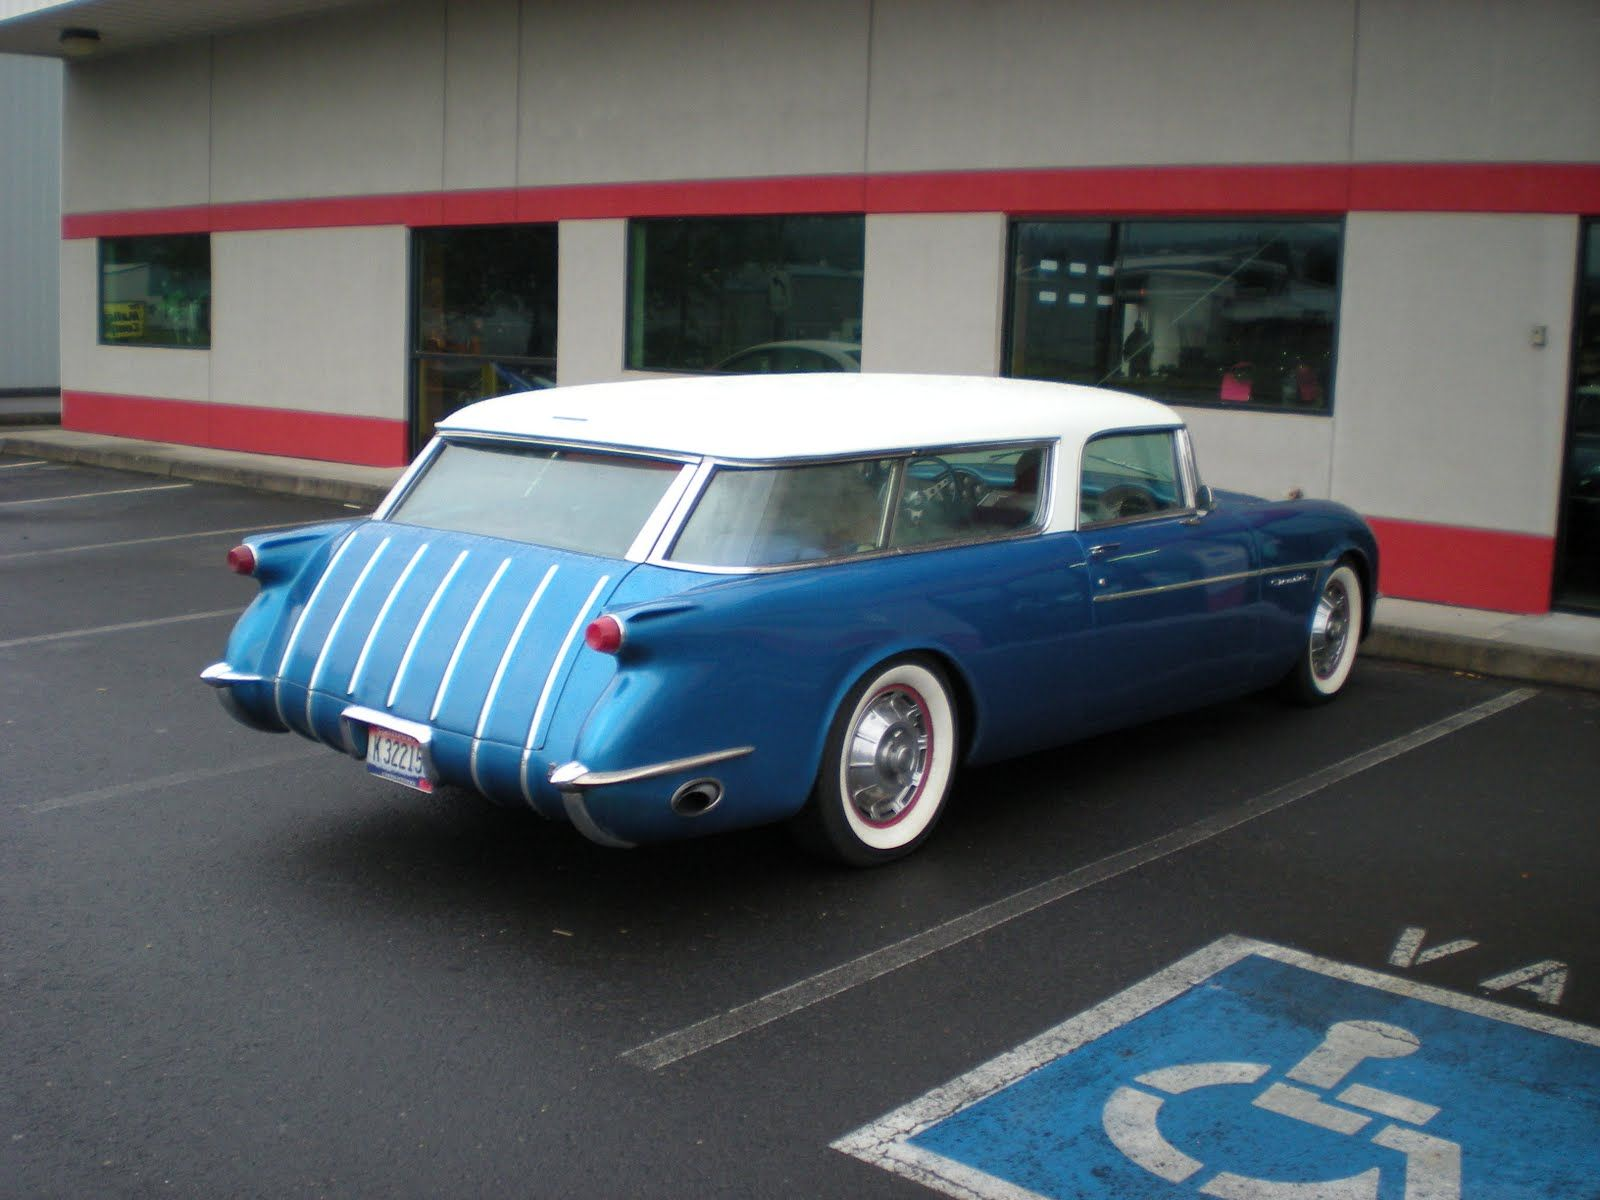 1953 Corvette Station Wagon This Car Should Not Exist It Was A Plymouth Savoy Concept In